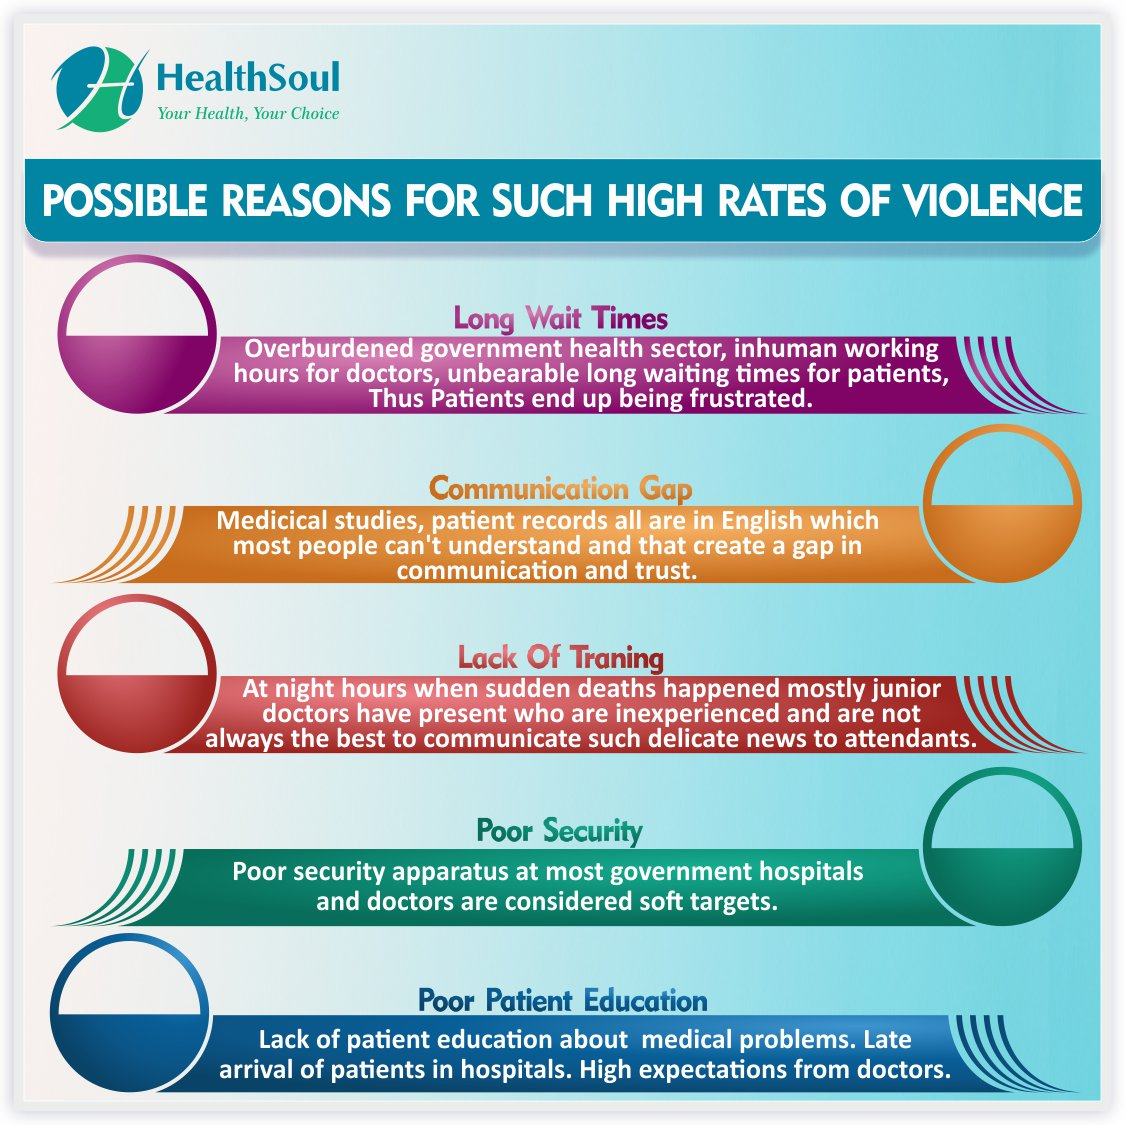 Possible Reasons For Such igh Rates of Violence